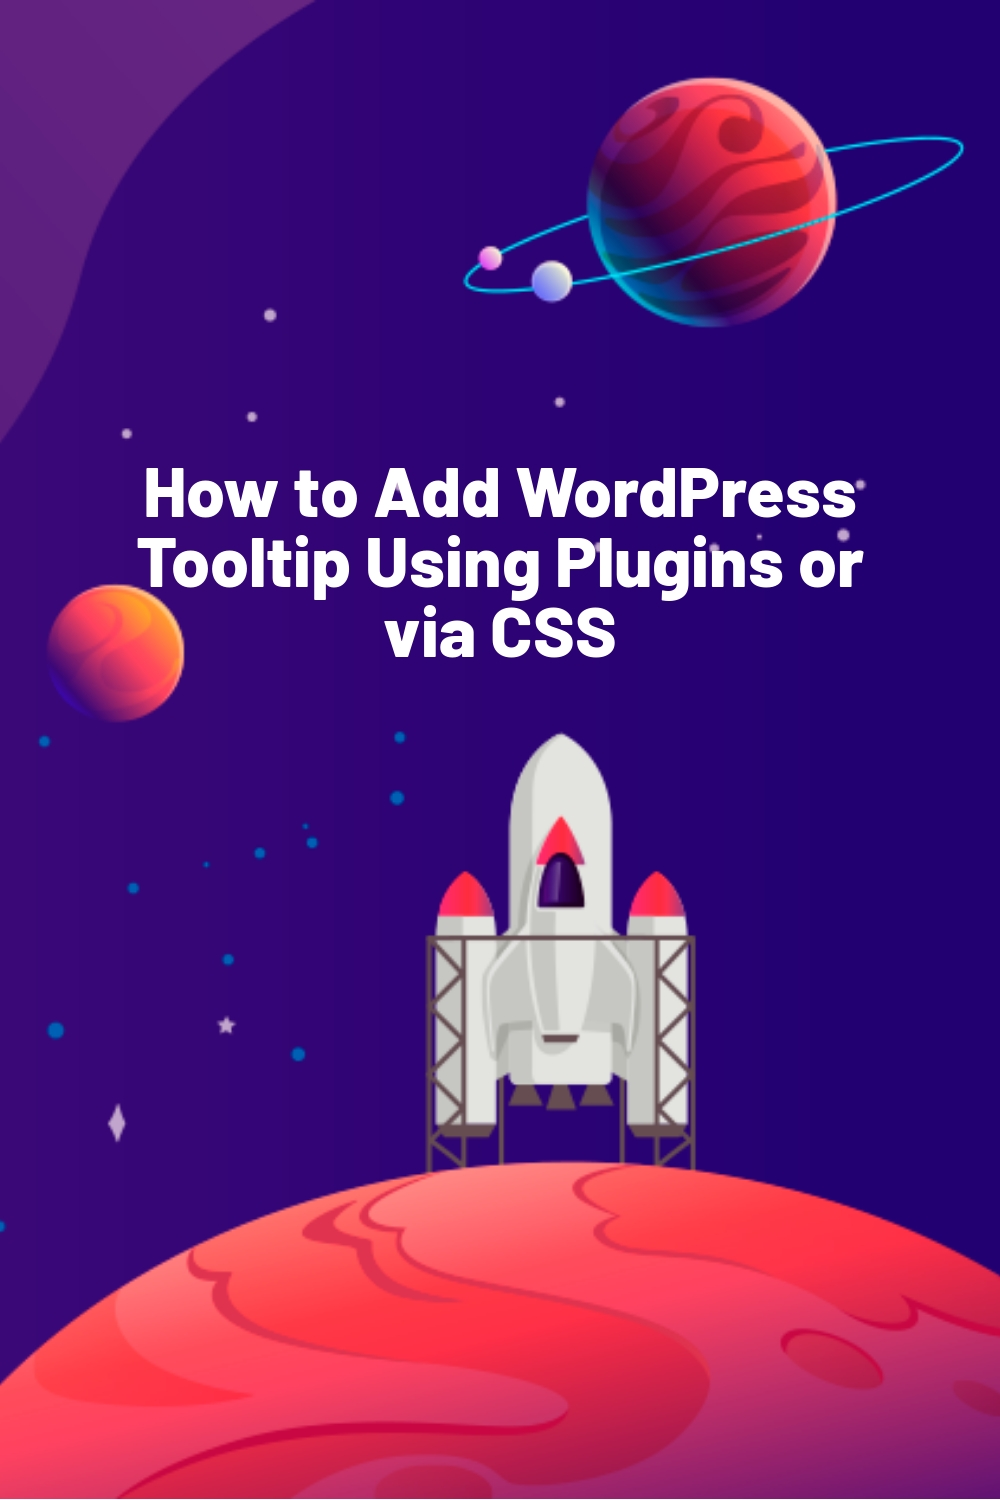 How to Add WordPress Tooltip Using Plugins or via CSS